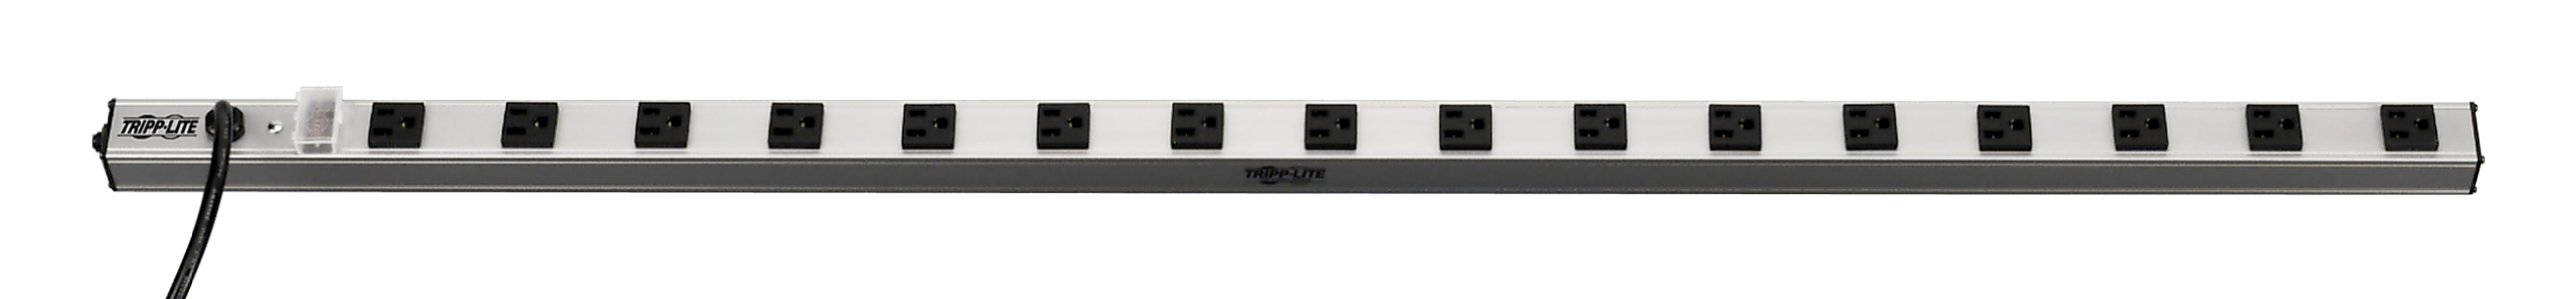 Tripp Lite 16 Outlet Surge Protector Power Strip, 15ft Long Cord, Metal, (SS7415-15)